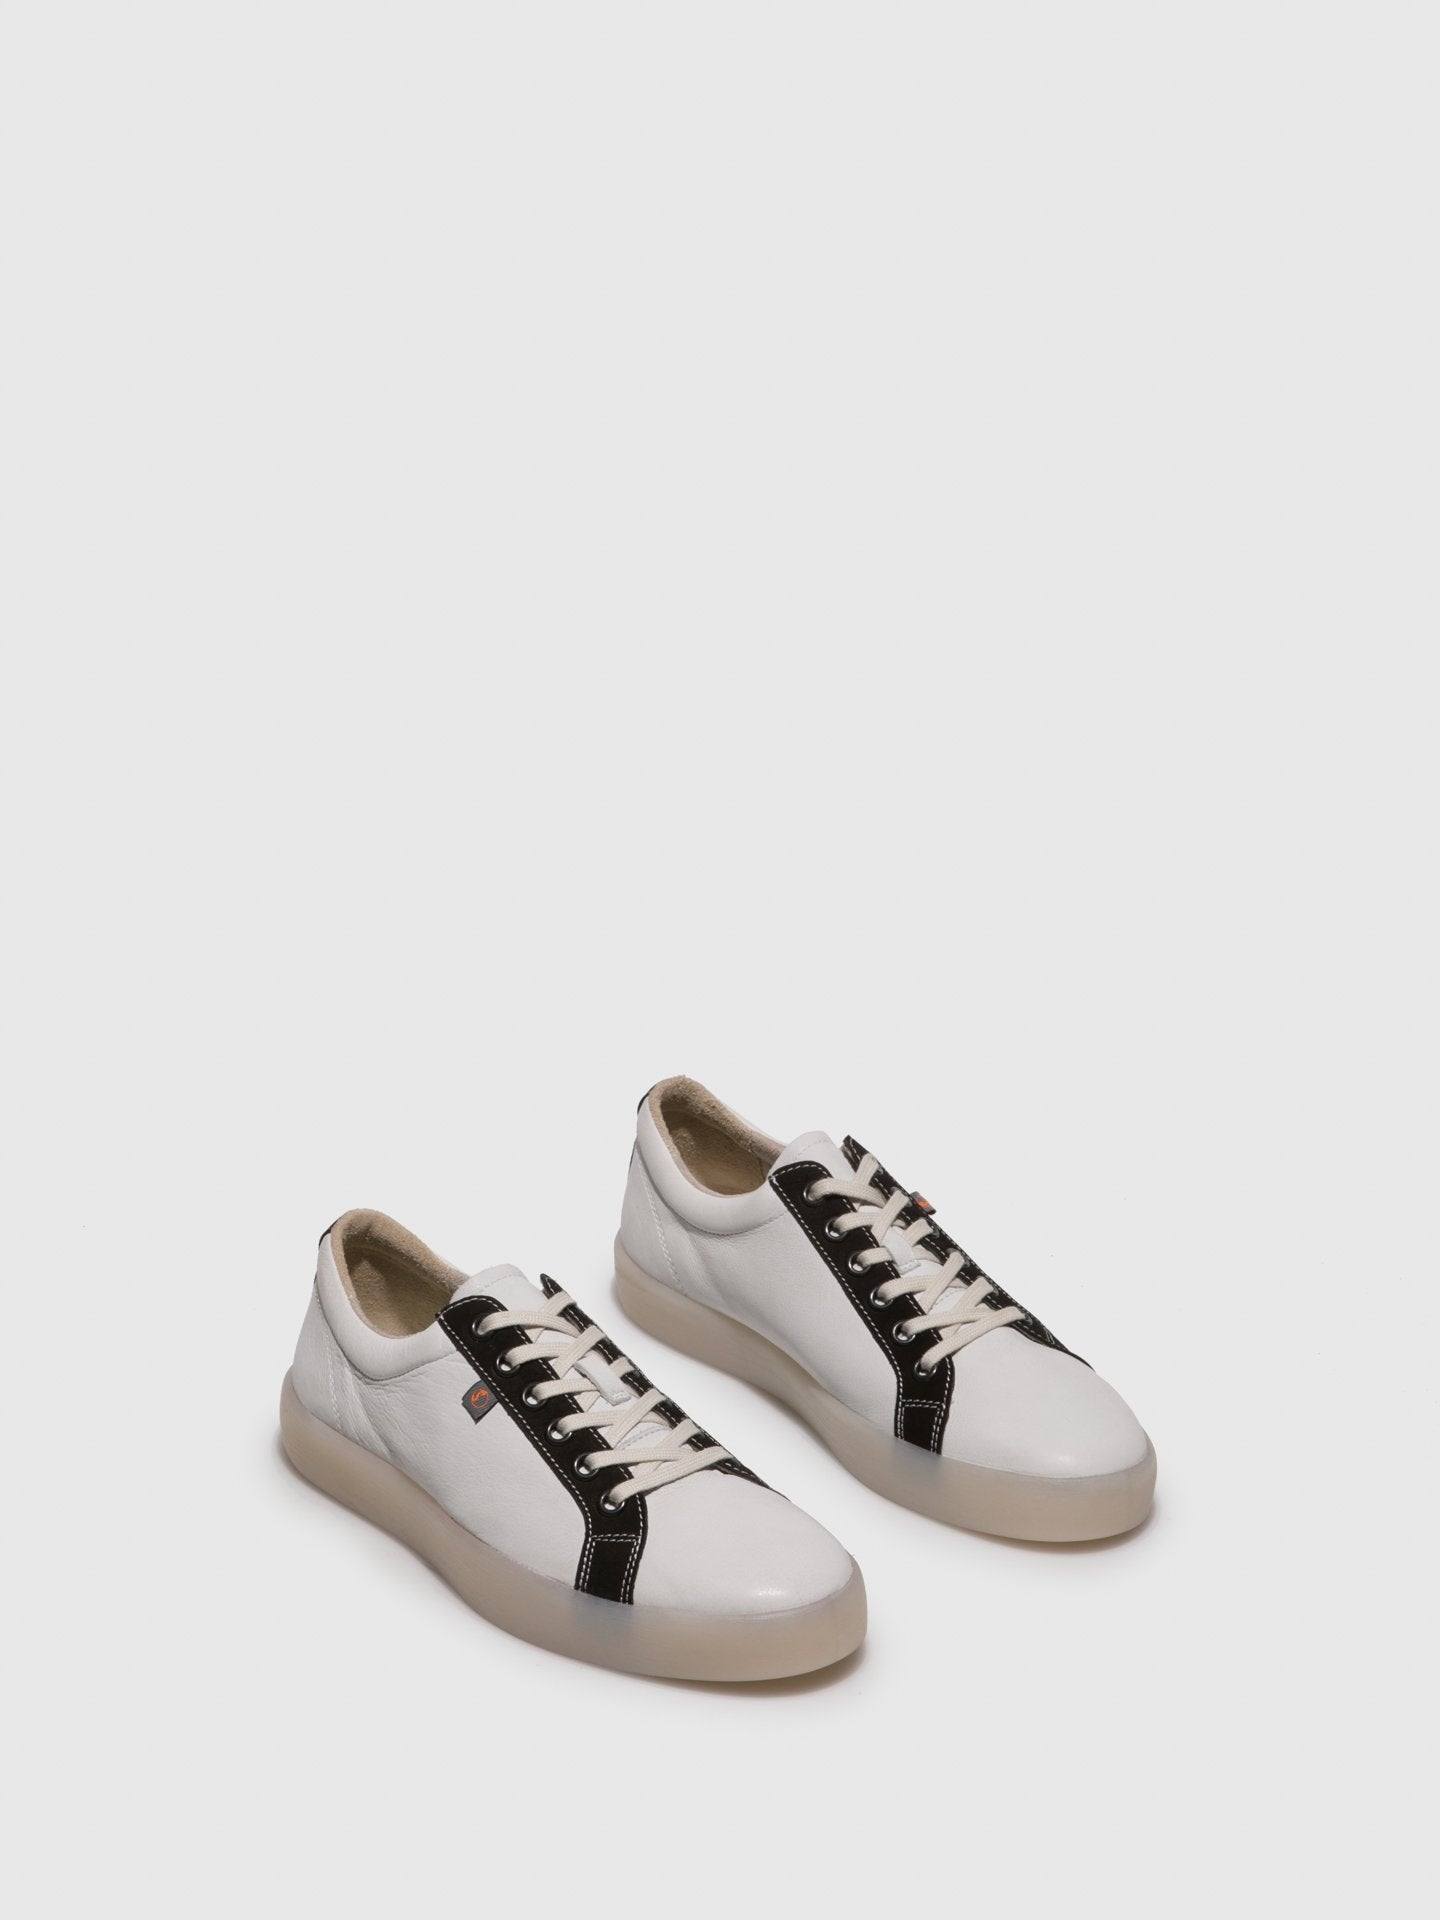 Softinos Lace-up Trainers REED595SOF White/Black